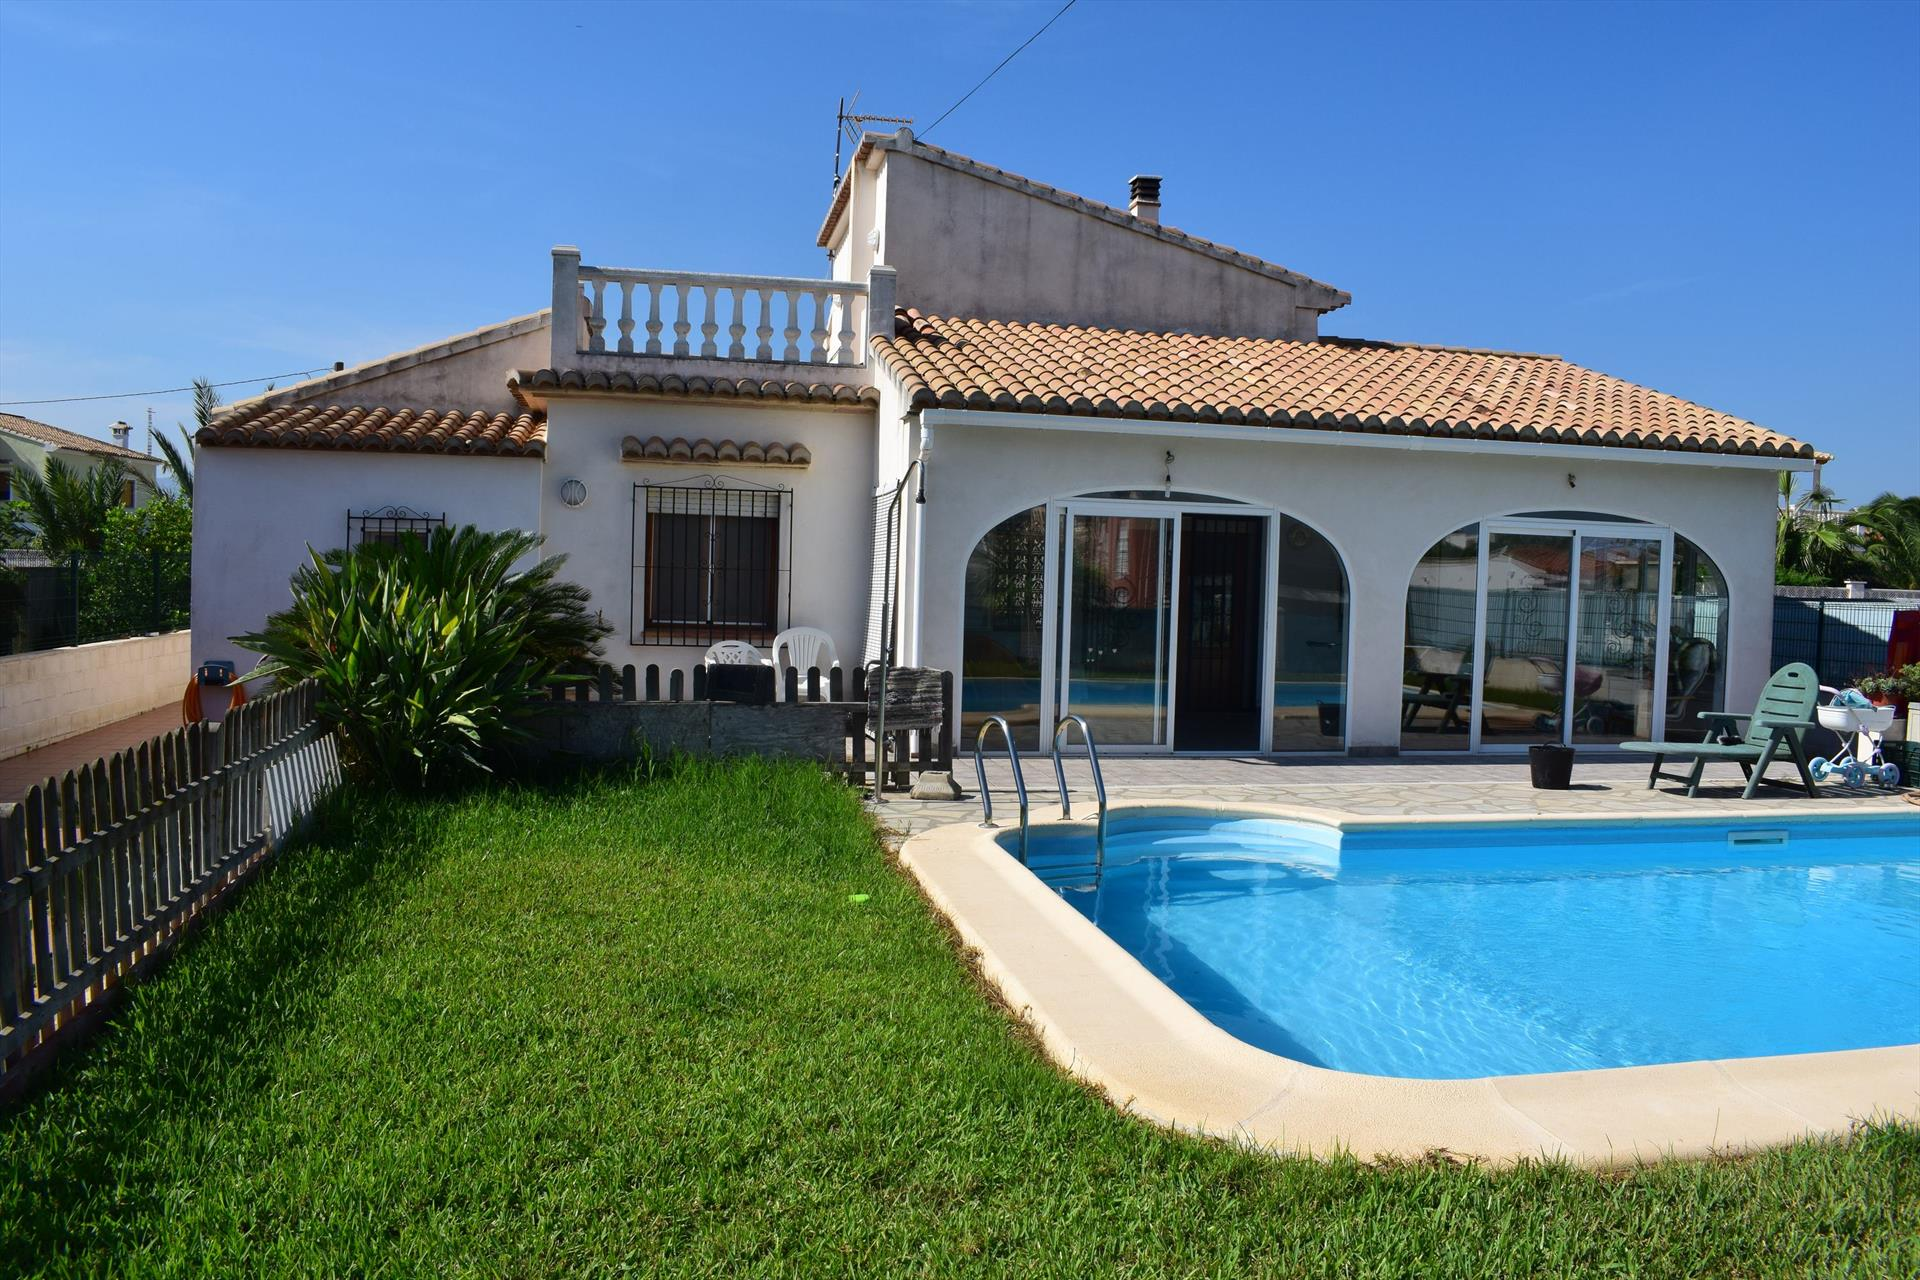 CH4323 Villa con Piscina a 250m del Paseo y Playa, Rustic and comfortable holiday house  with private pool in Oliva, on the Costa Blanca, Spain for 5 persons.....